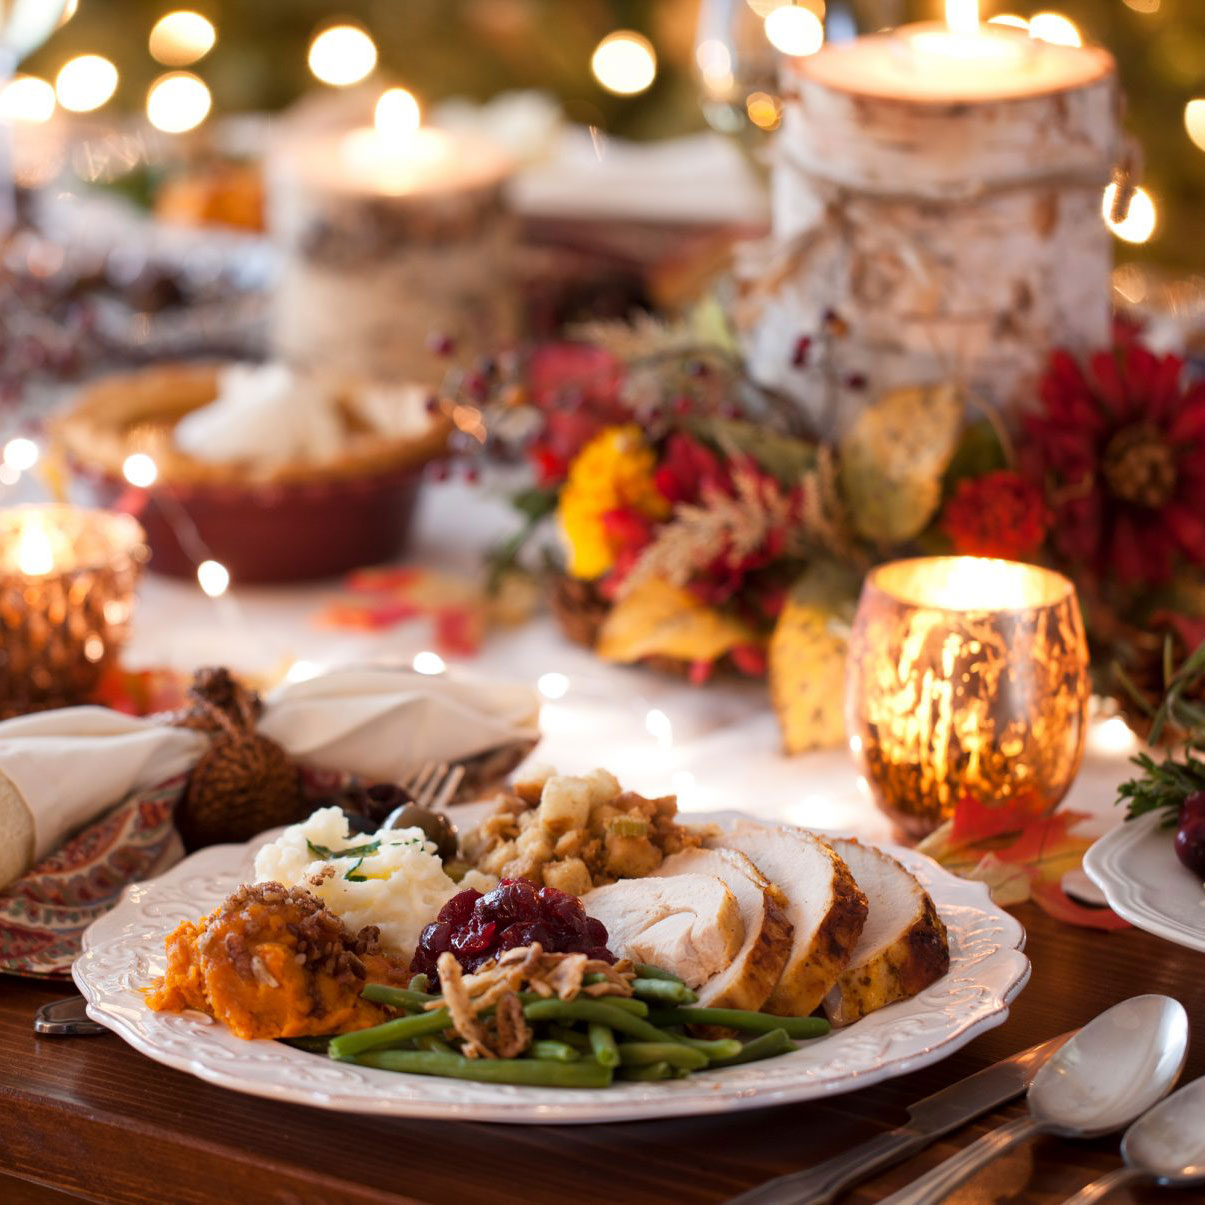 These Are Americans' Least Favorite Thanksgiving Dishes, According to New Research